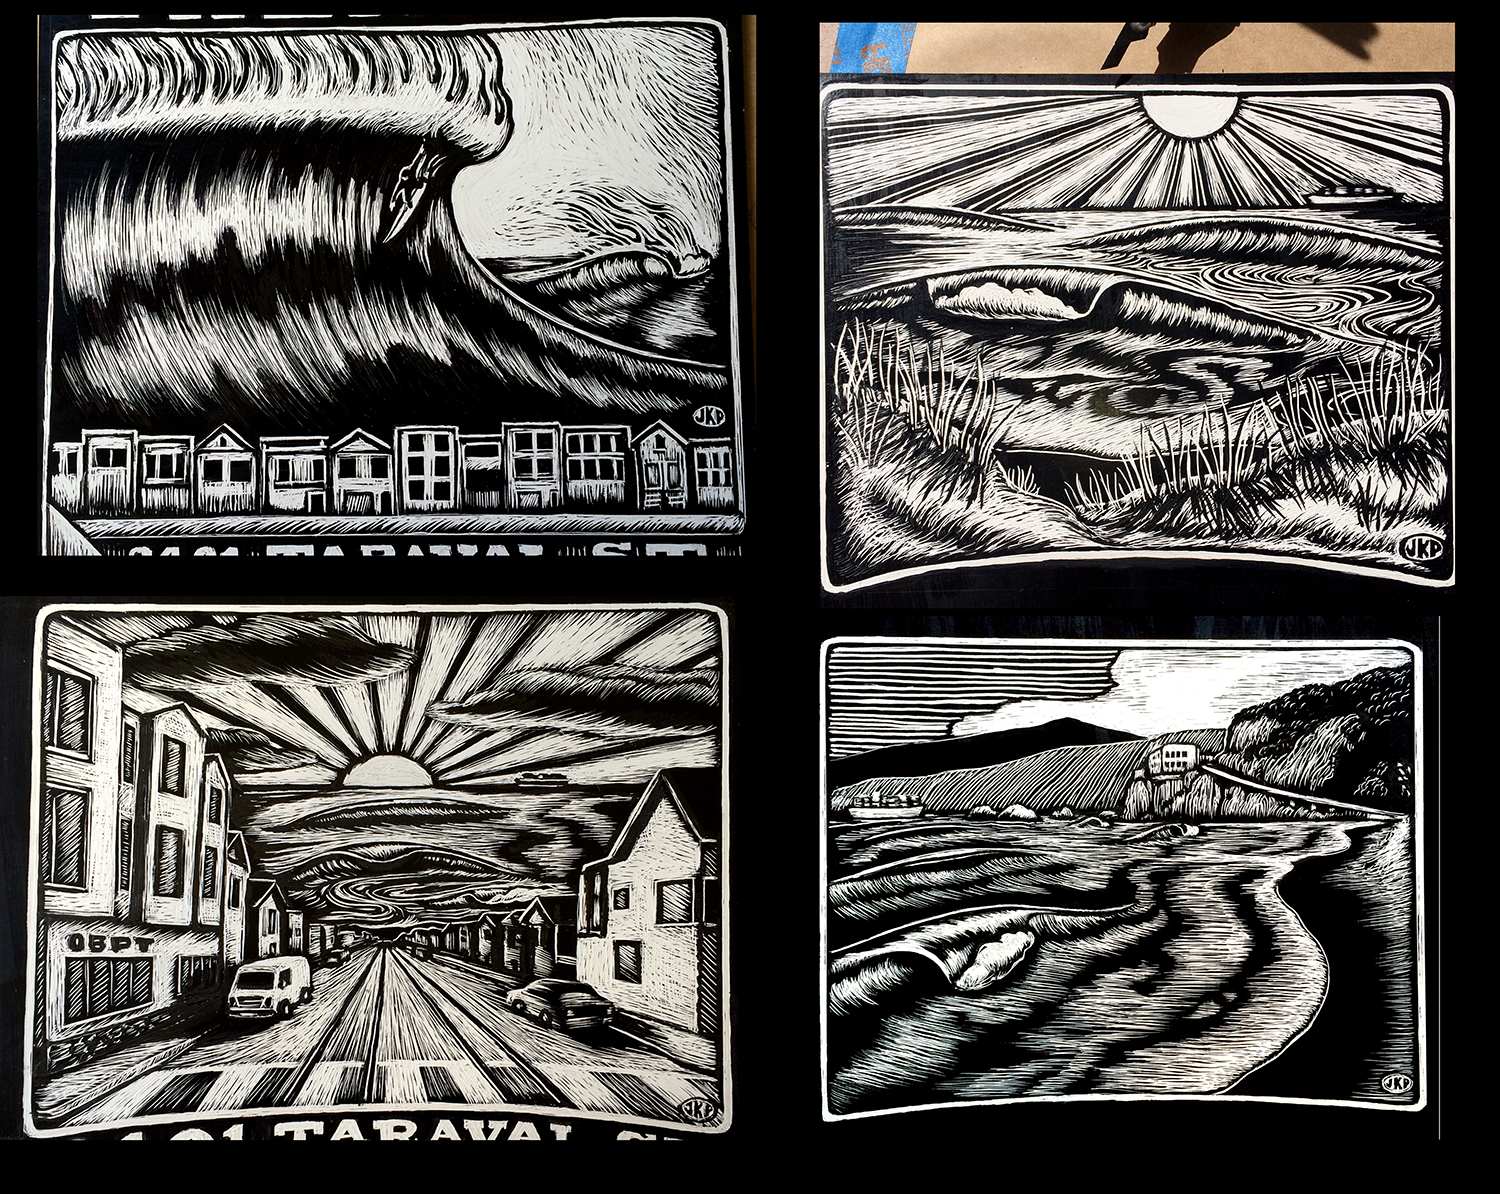 Newly Inked and scratched images for Ocean Beach Physical Therapy...